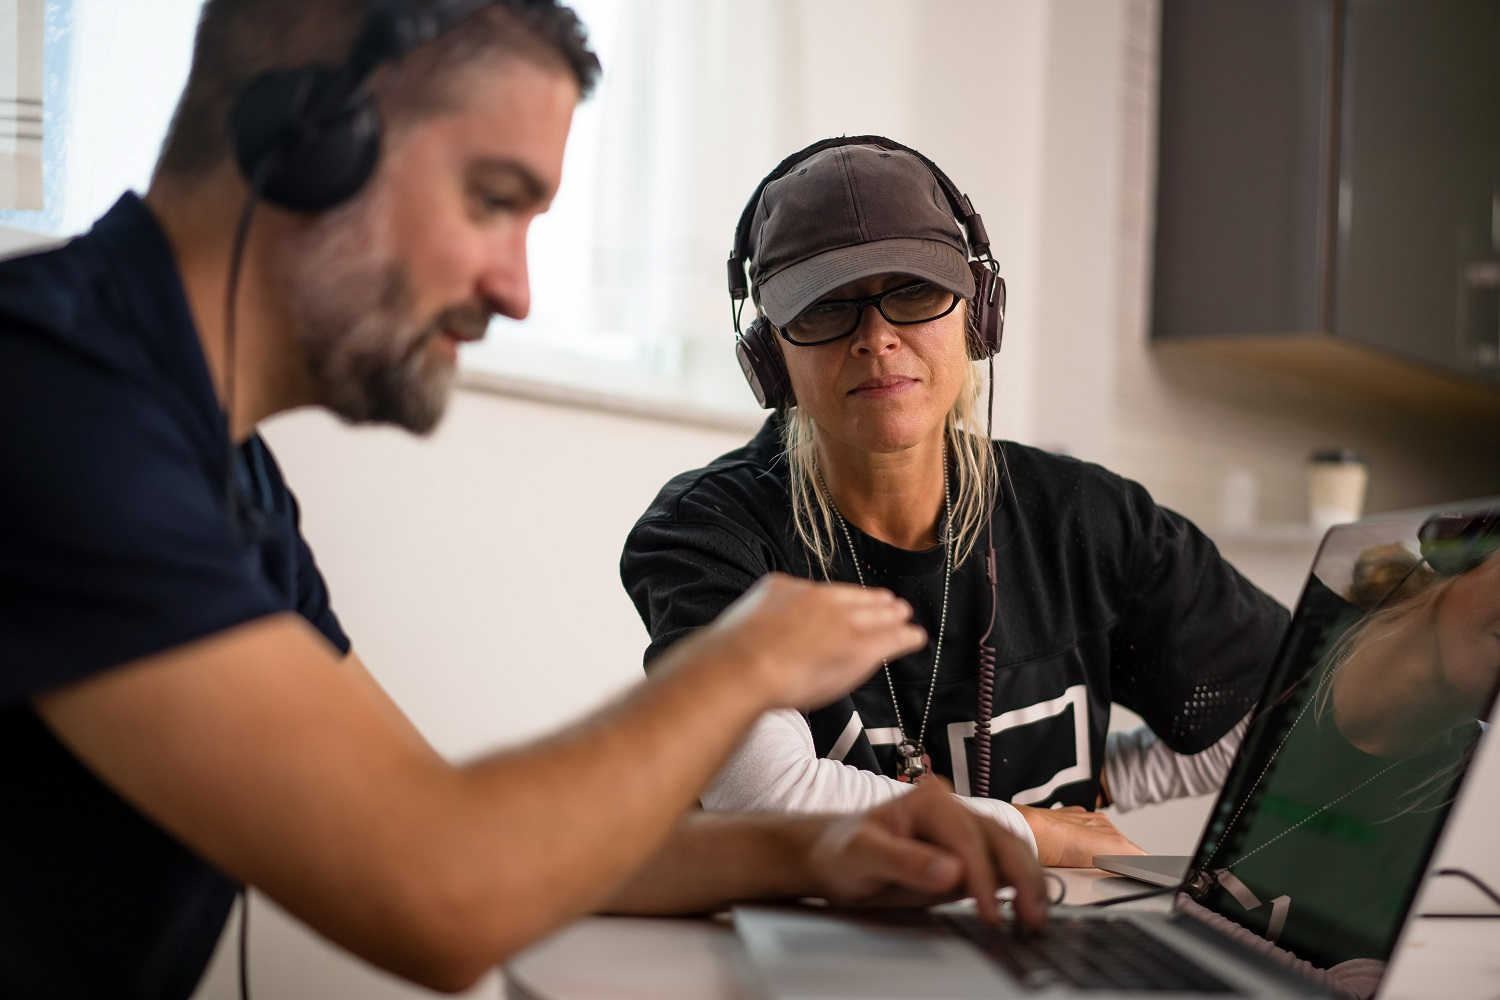 2019_06_16  Caecilia and Kerwin Working On Audio-0922.jpg